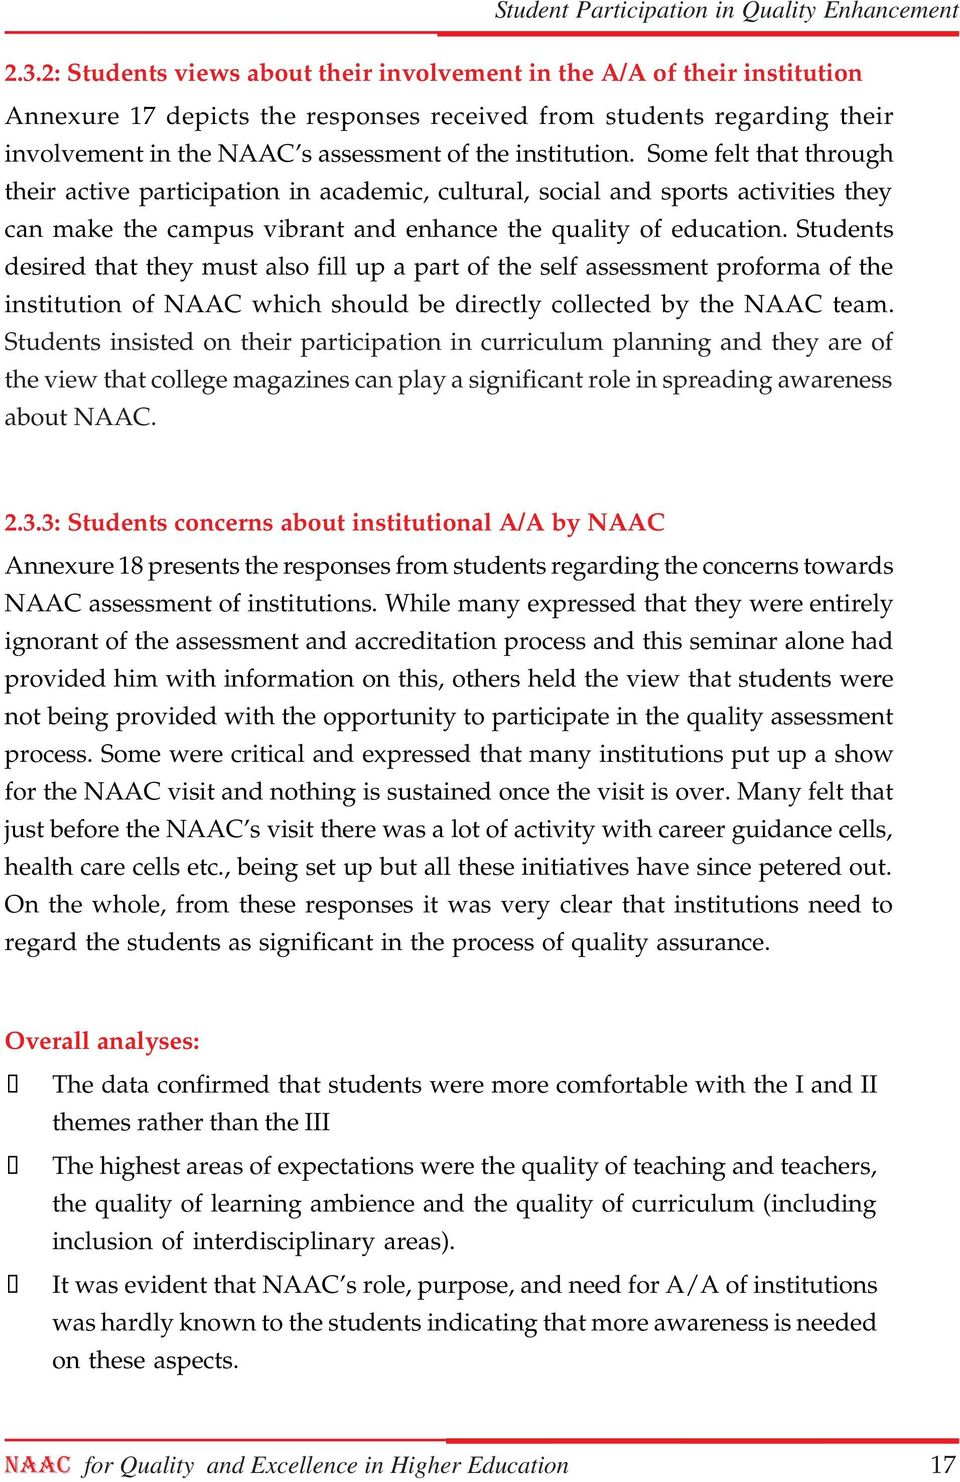 Students desired that they must also fill up a part of the self assessment proforma of the institution of NAAC which should be directly collected by the NAAC team.